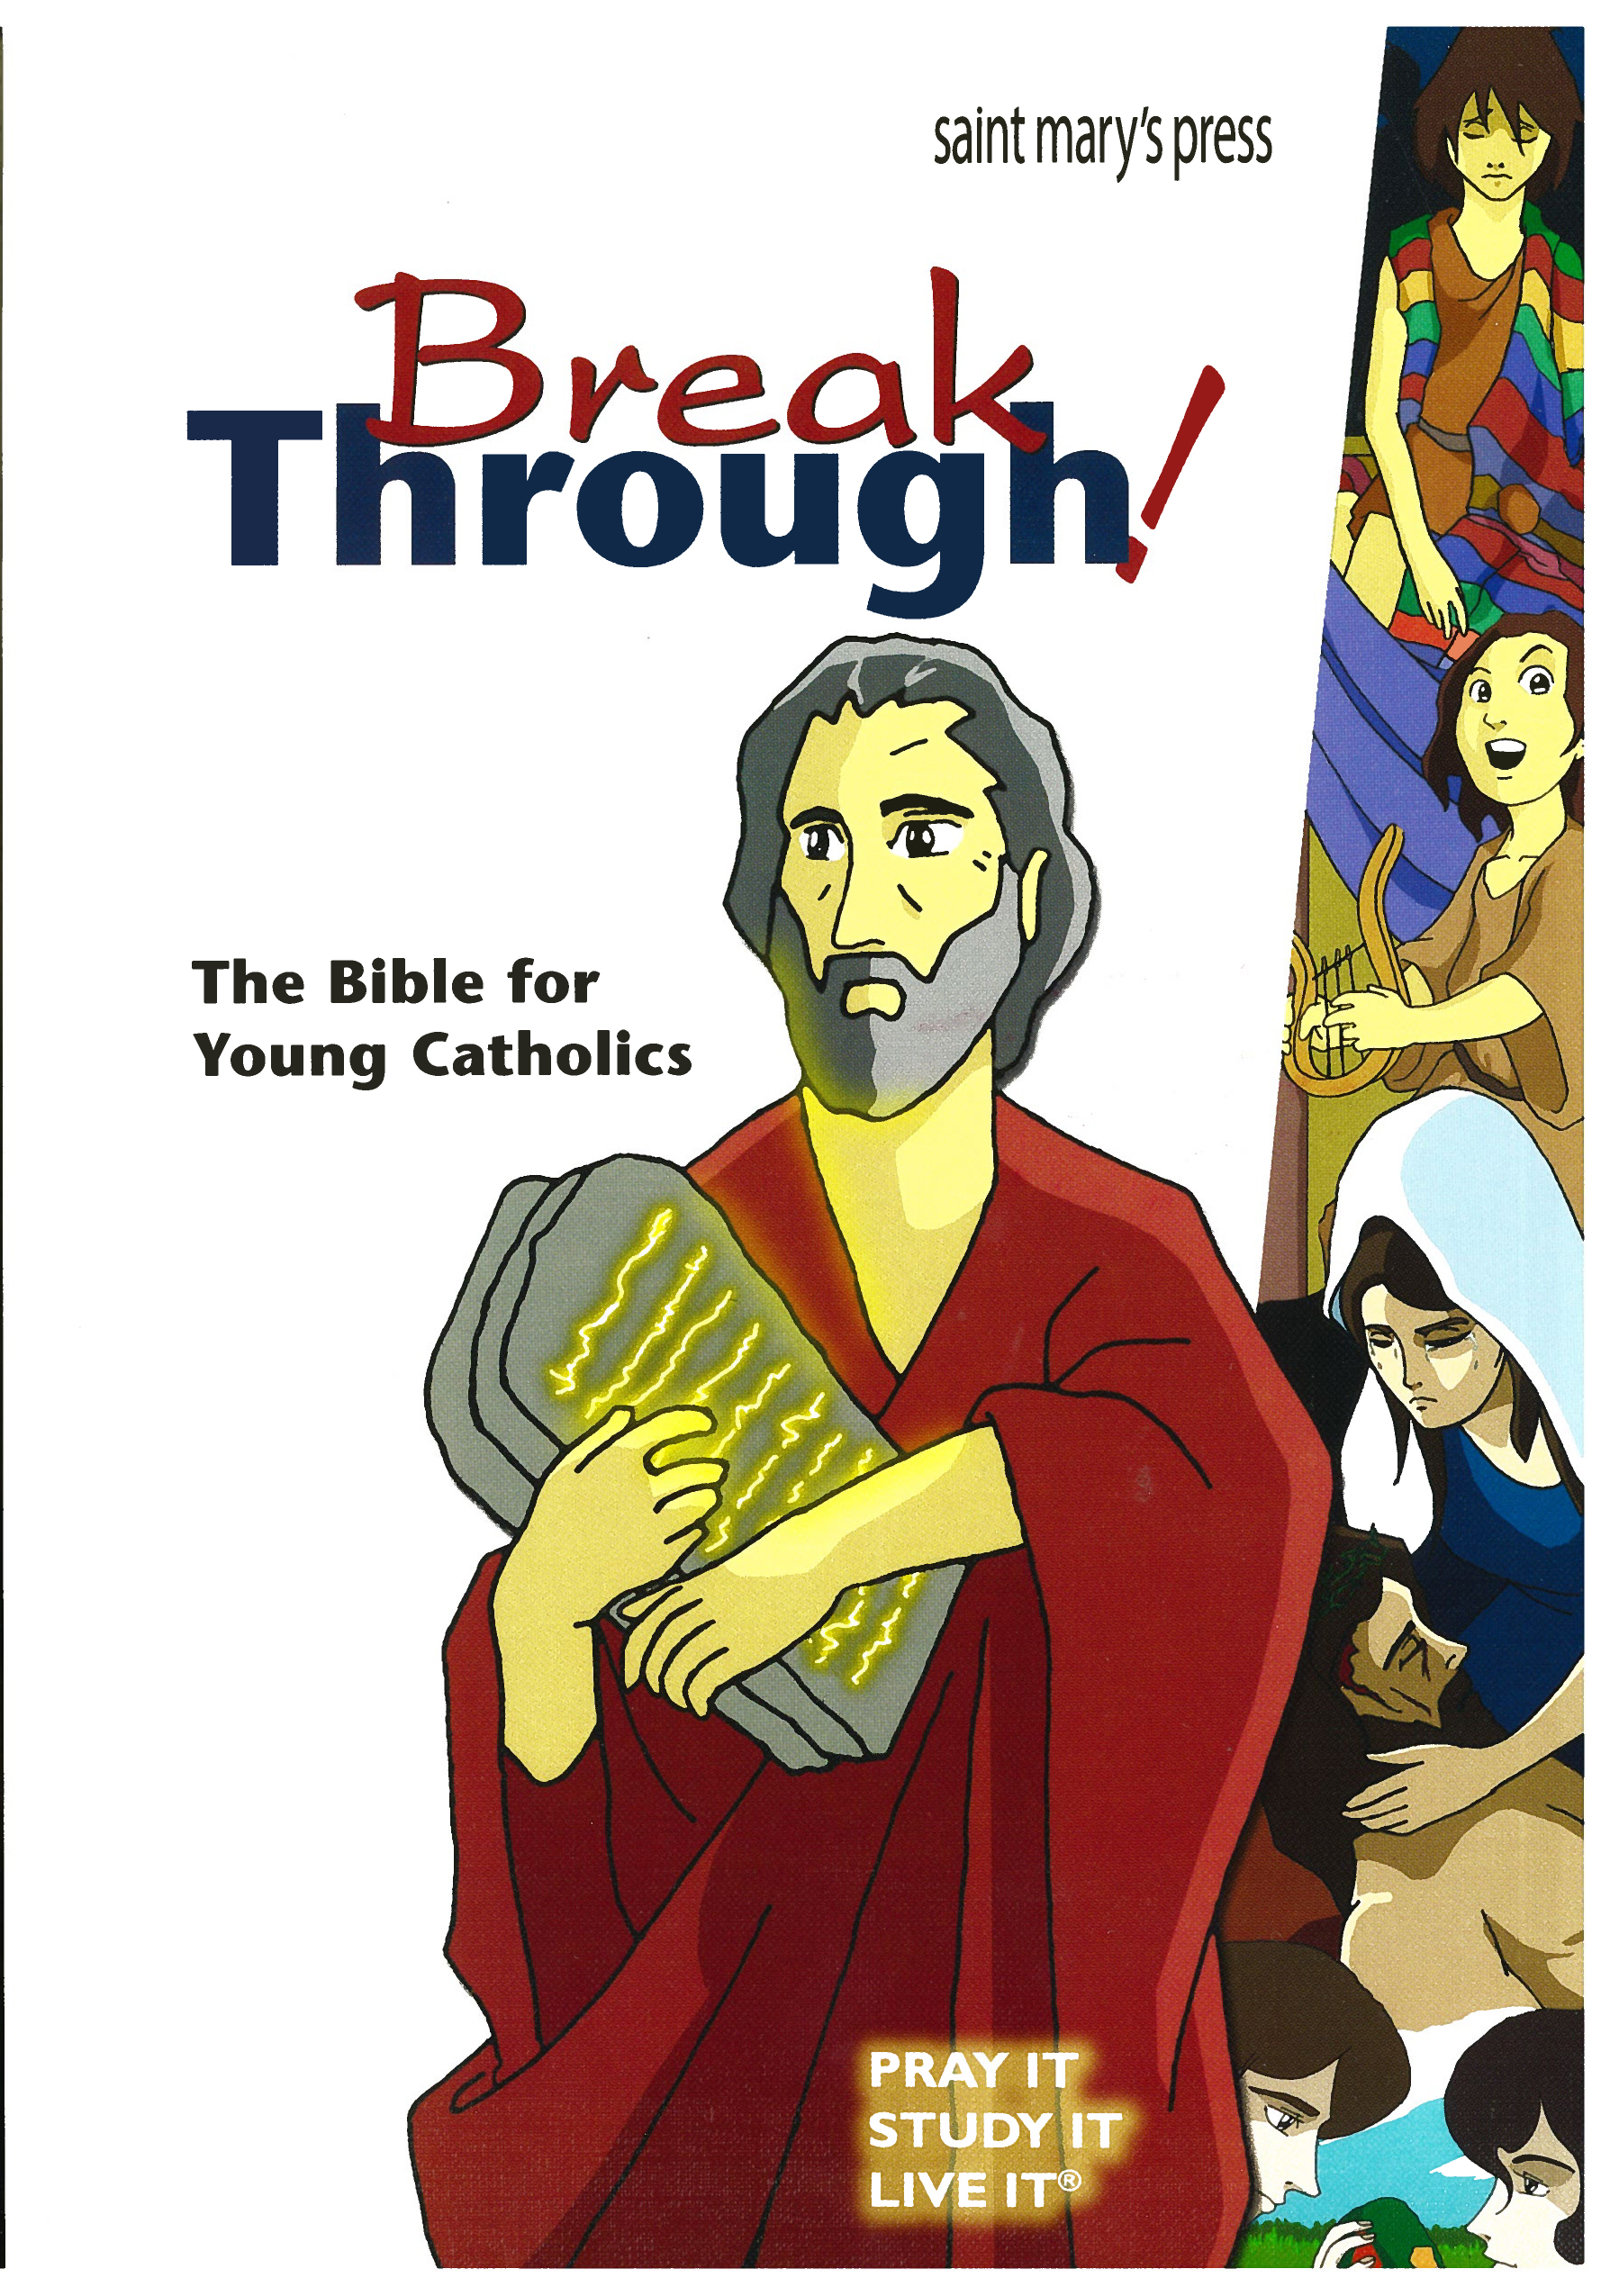 Break Through: The Bible for Young Catholics (Papaerback edition) 69-9781599823393